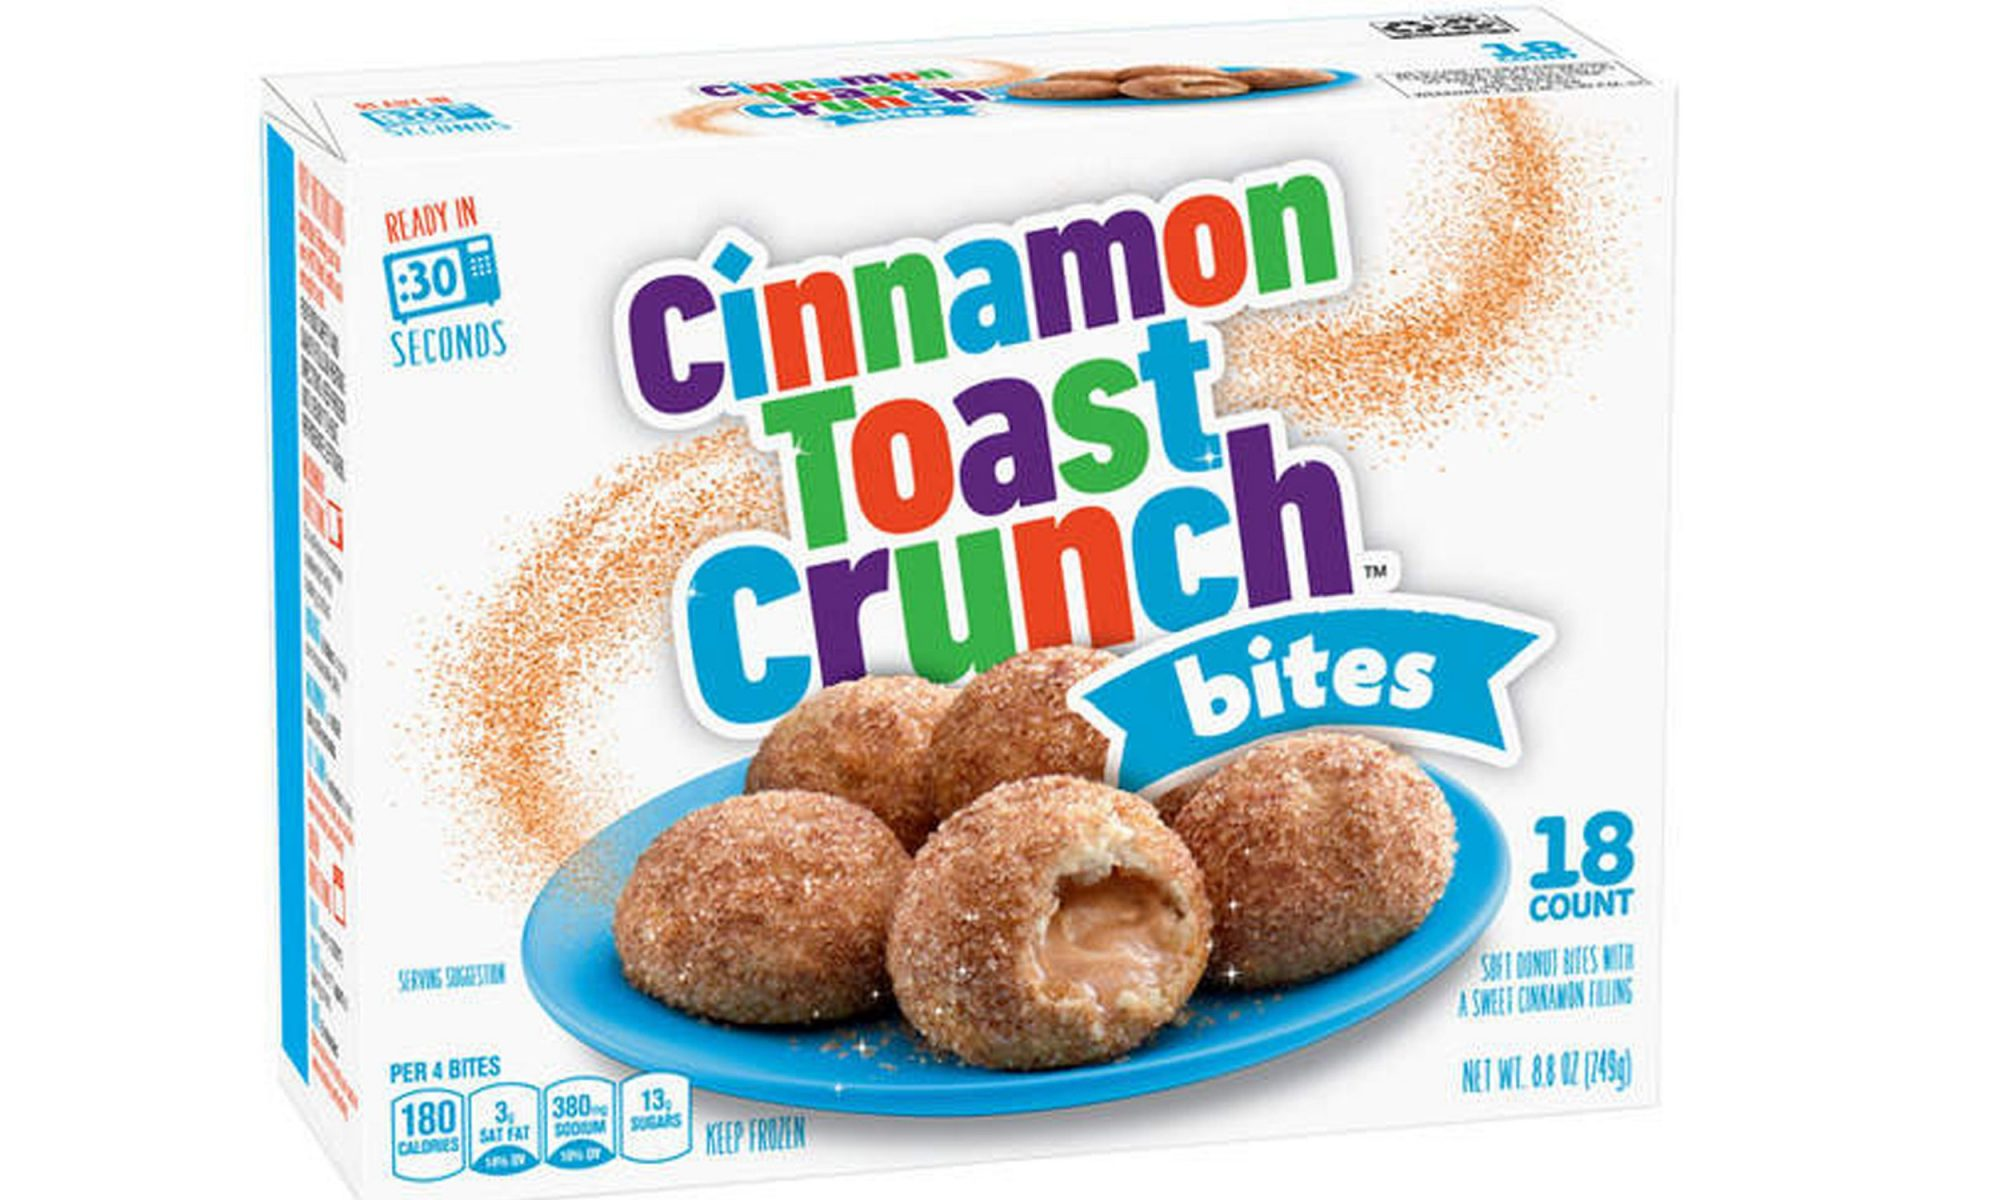 EC: If You Love Cinnamon Toast Crunch, You Have to Try These Doughnut Bites